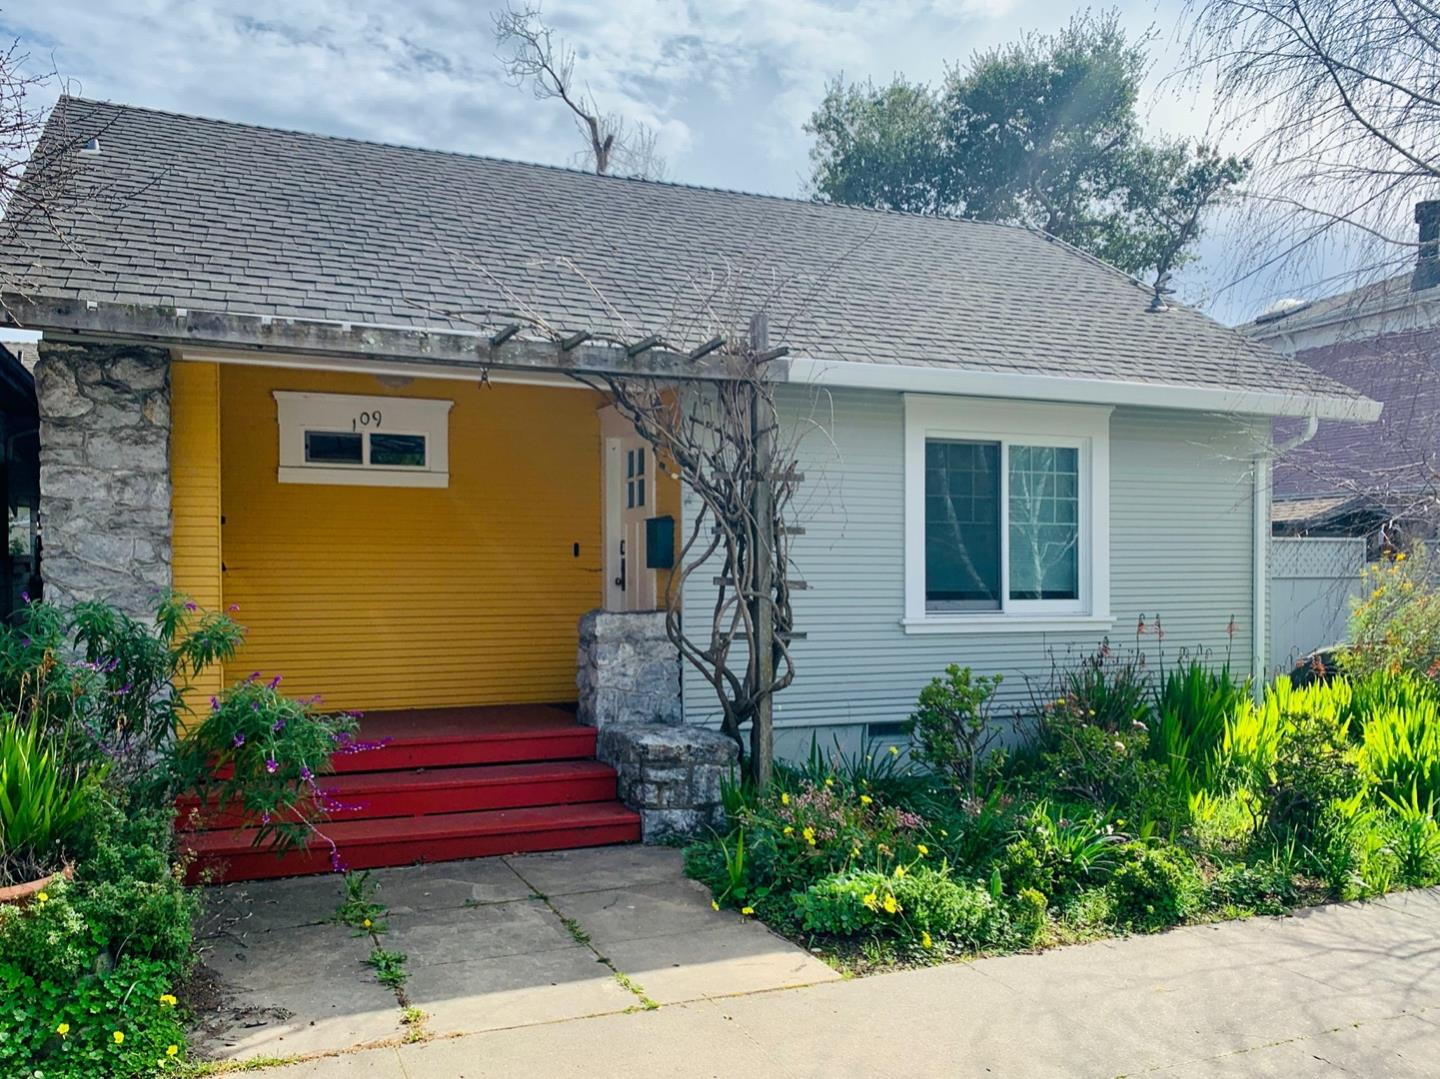 Beautiful remodeled cottage nestled in one of the best neighborhoods in the Westside of Santa Cruz. Perfect for relaxing and enjoying life. Finished attic to use as an artist studio or any other use with lots of storage and two windows. The oversized converted garage can be used as office, exercise room, workshop. Guest room in the backyard for resting and enjoying the luscious landscaping. Paid off 5 year old solar system. So many improvements, can't list them all. New floors and subfloors, all new appliances, new cabinets and quartz counter tops in the kitchen, laundry room, all new double pane windows . New ceiling fan. Remodeled bathroom and kitchen. New video doorbell, new NEST alarm system. Painted throughout. Improved plumbing with copper pipes. Fumigated in 2018. No street parking permit required. Conveniently located at walking distance to downtown Santa Cruz and to Abbey Coffee Lounge. Close to the freeway and easy access to beaches, walking and bike trails, eateries.